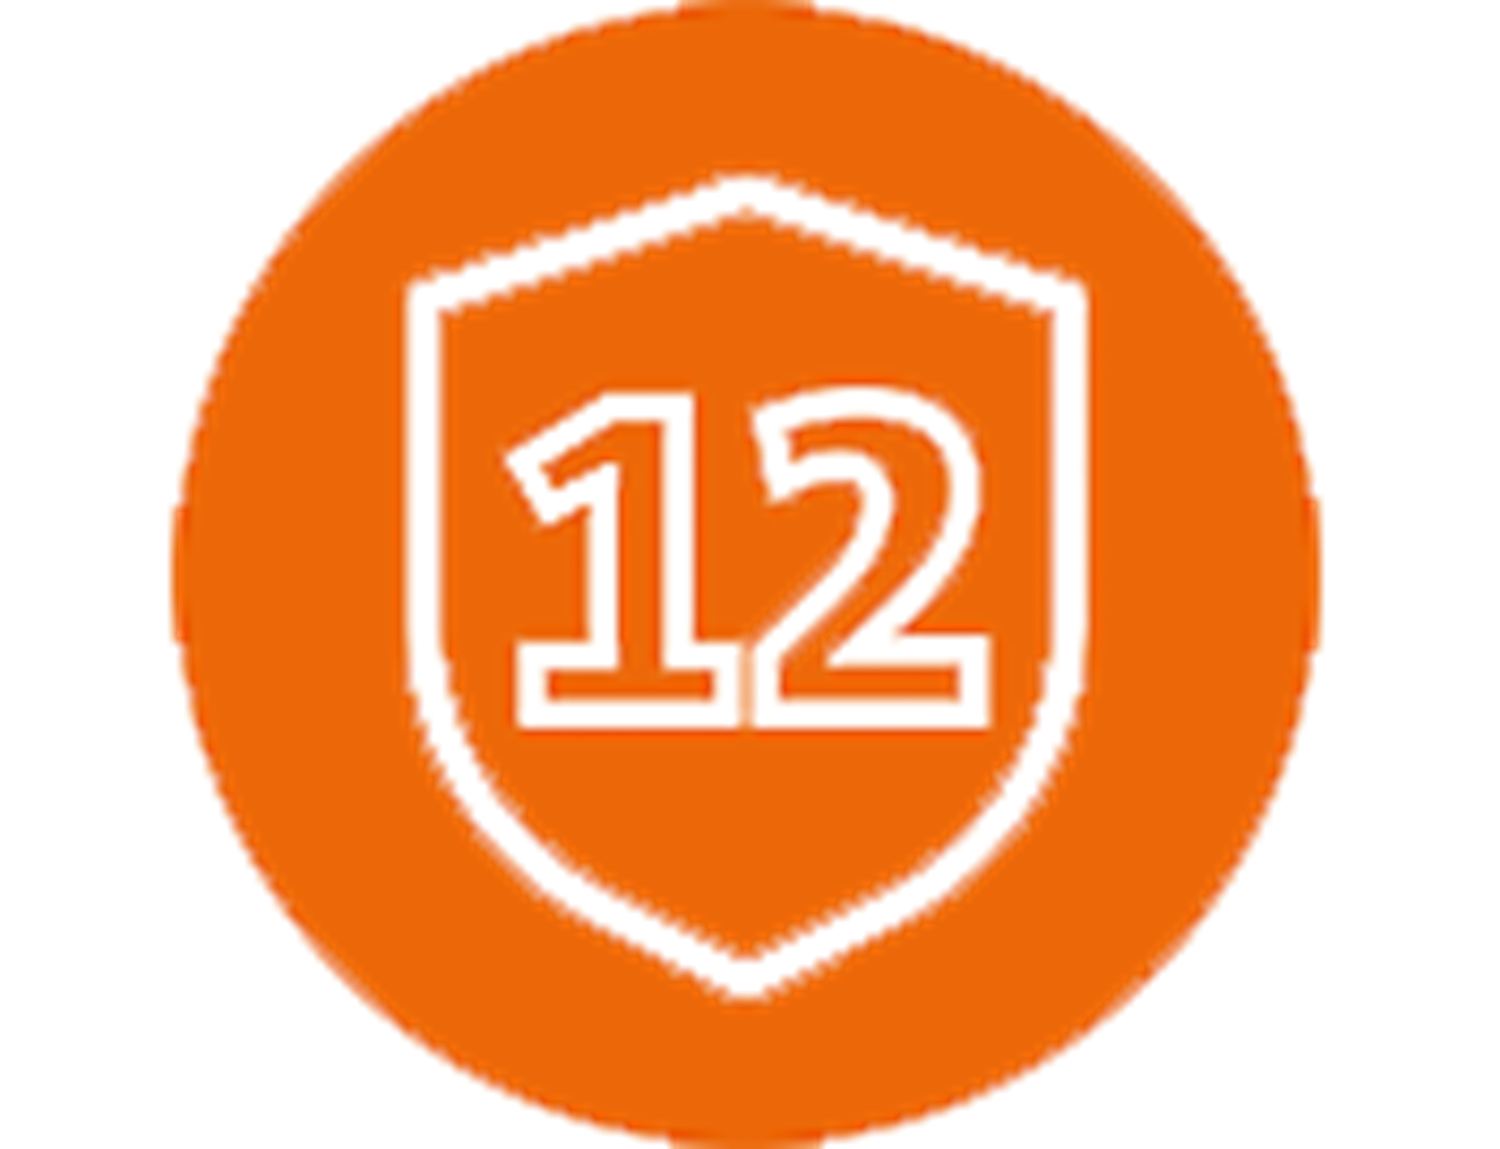 Number 12 on orange sign in a white shield